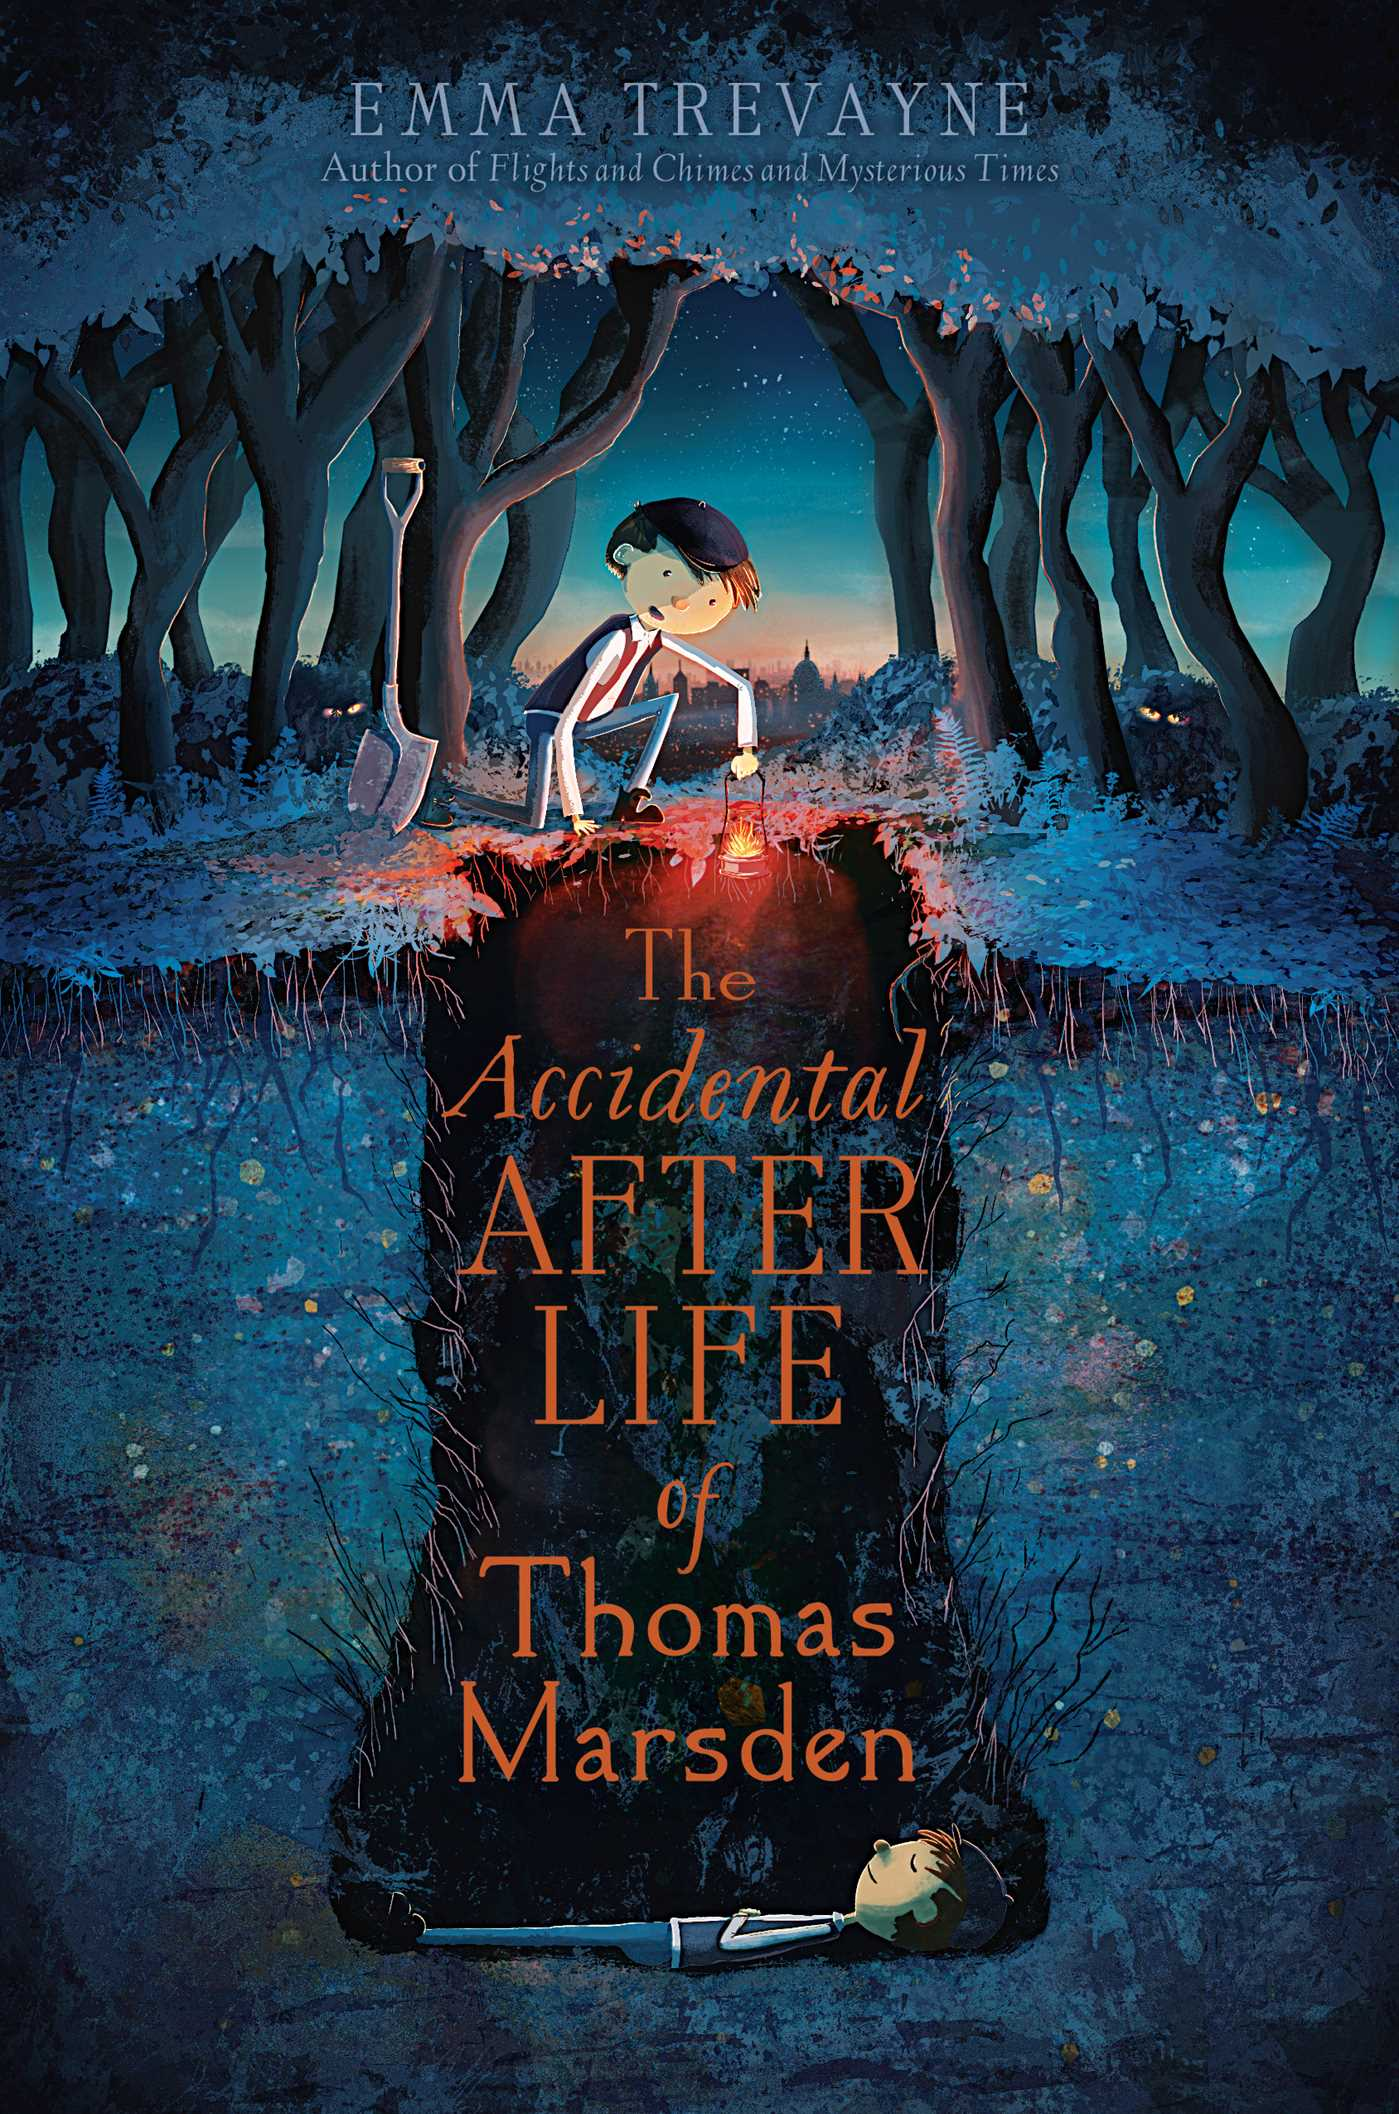 The-accidental-afterlife-of-thomas-marsden-9781442498822_hr